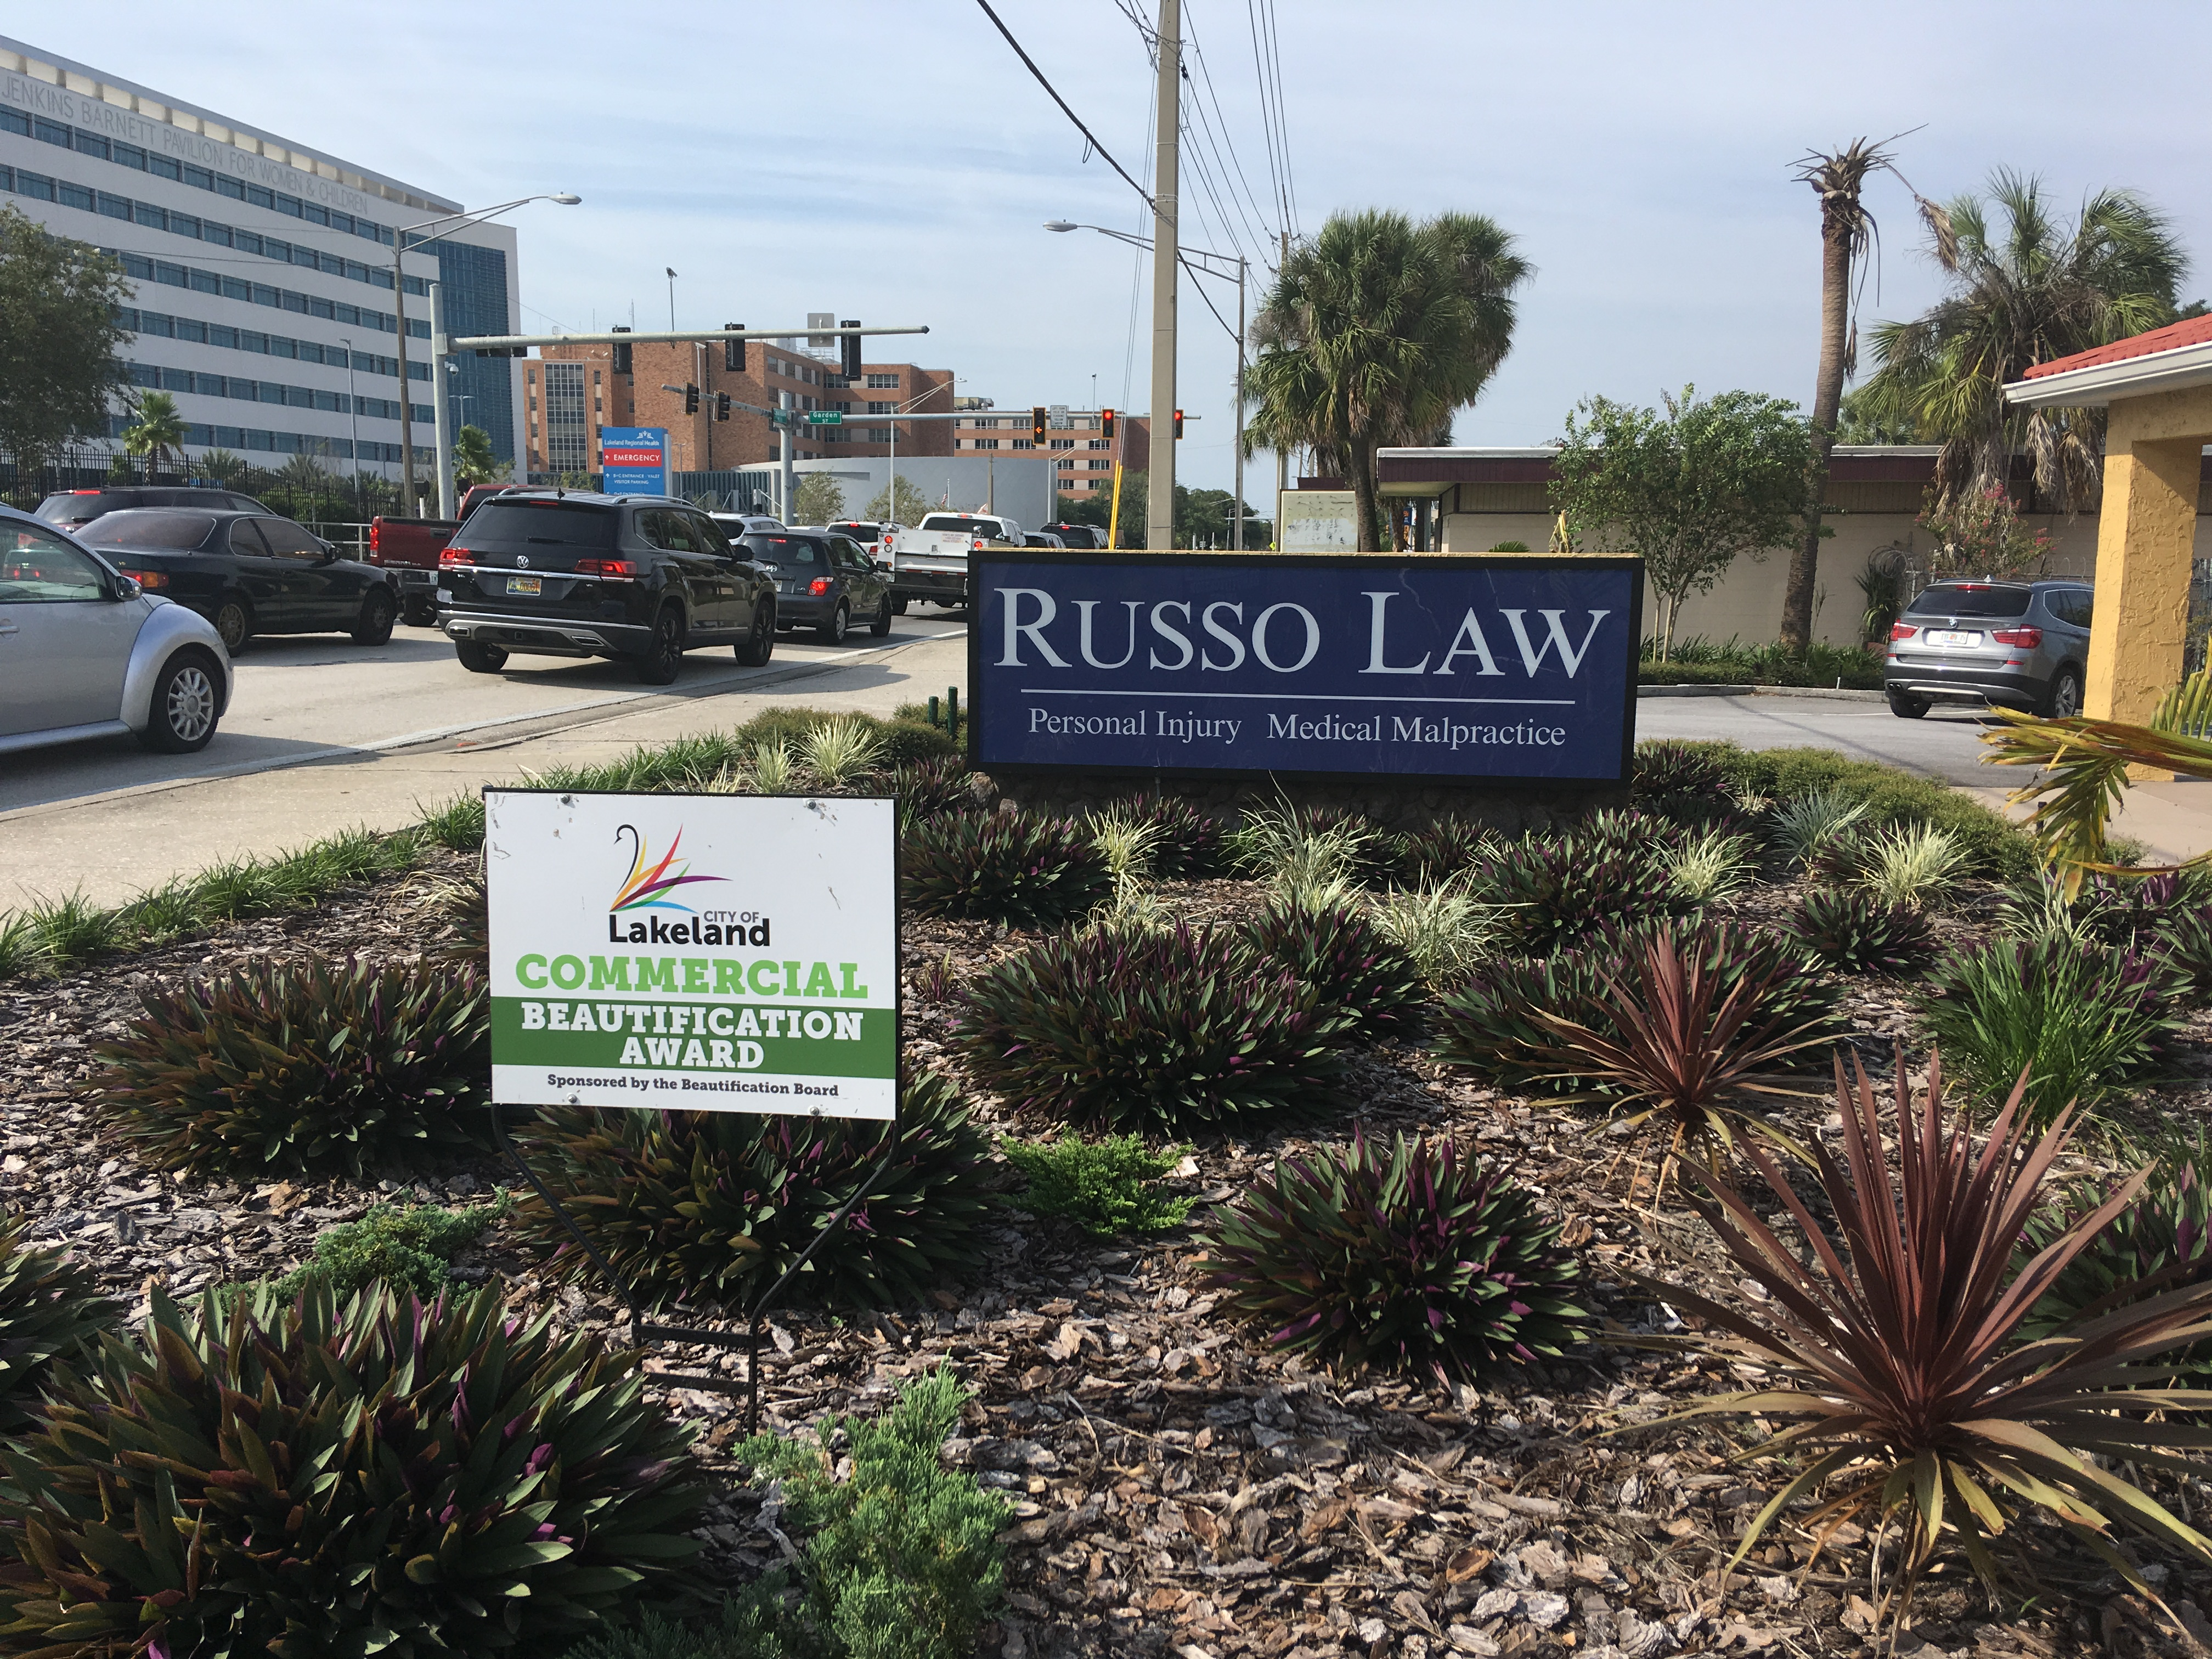 Russo Law Pa Personal Injury Attorney Lakeland Fl 33805